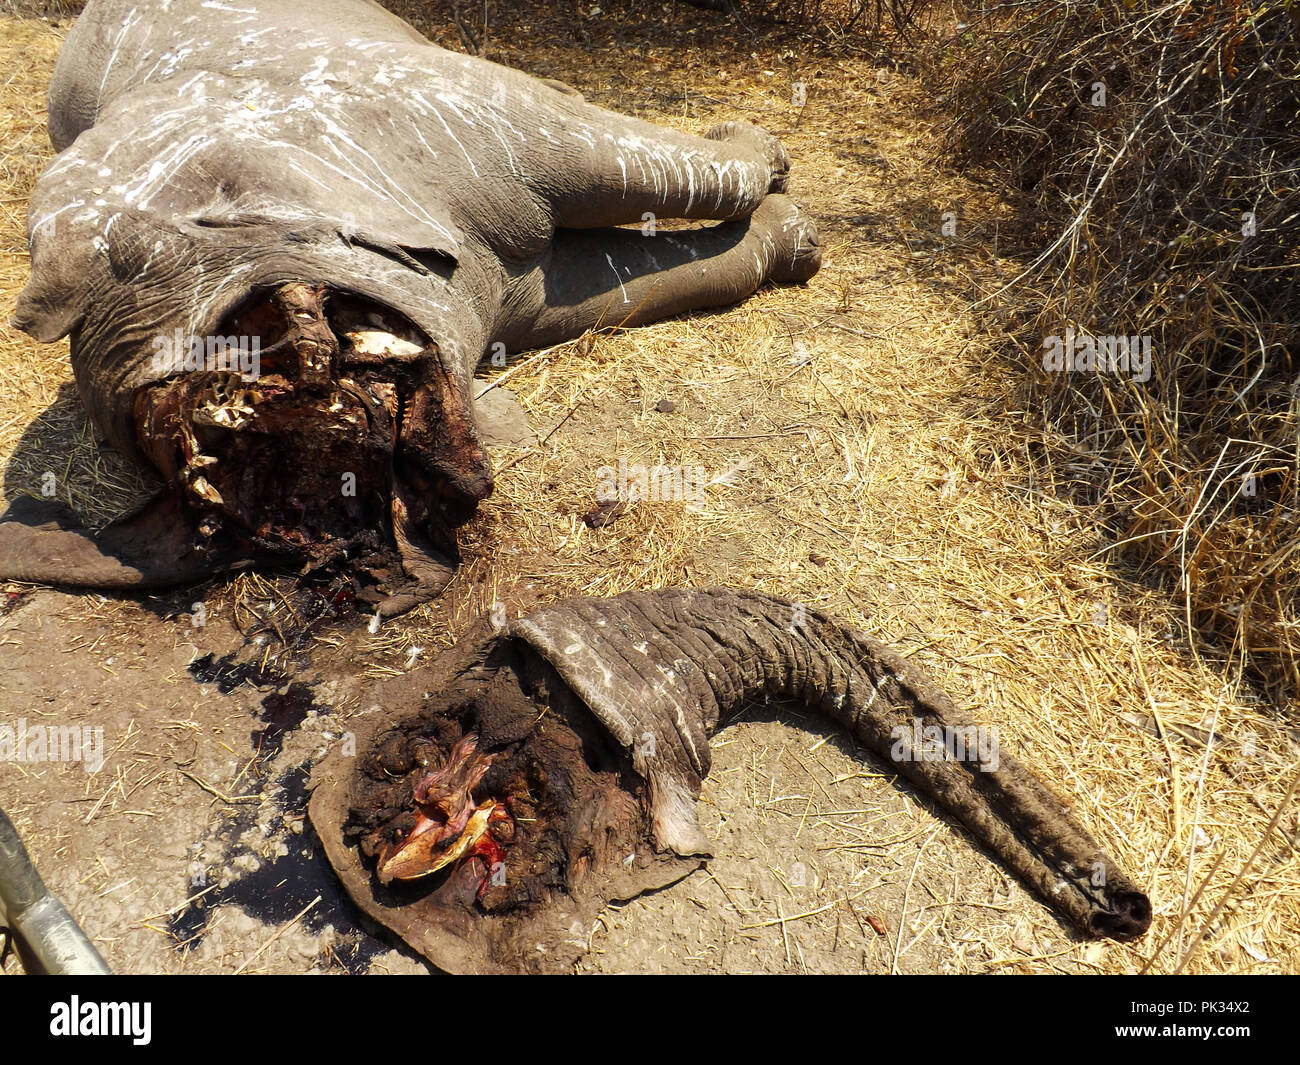 The remains of an elephant poached in Ruaha National Park close enough to one of the safari camps that were shots were clearly heard one evening. The  - Stock Image